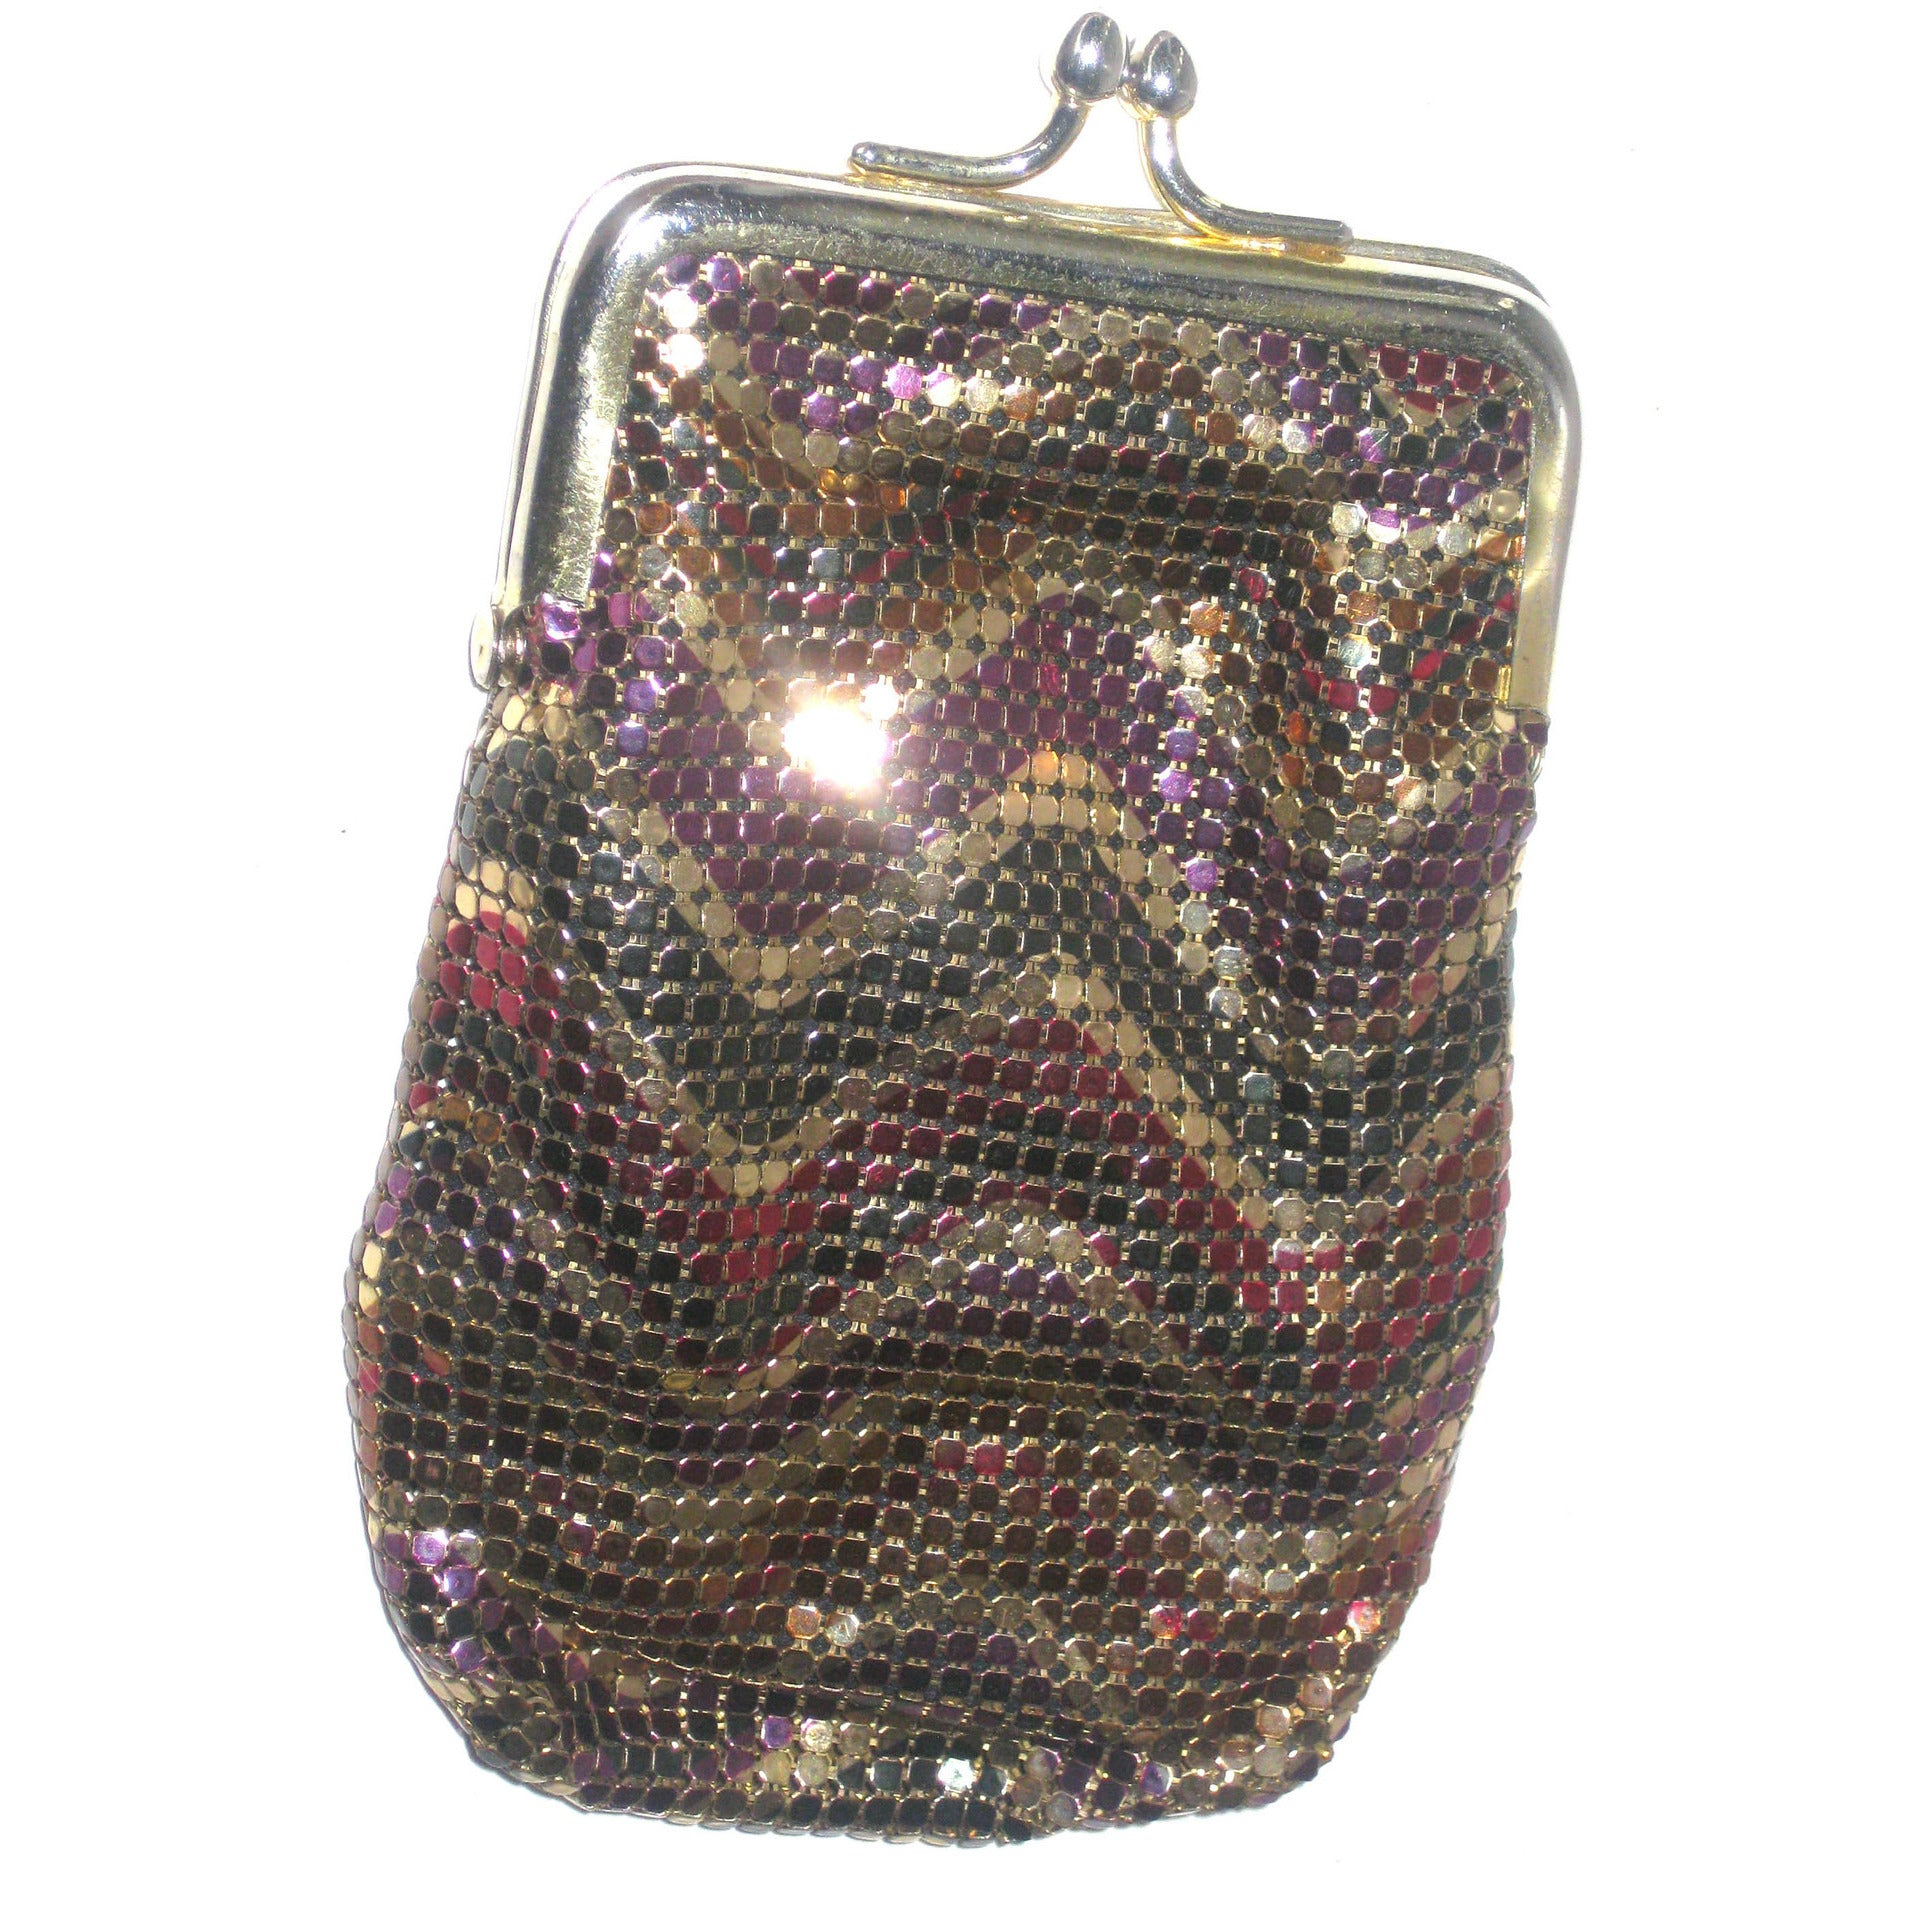 Vintage Rainbow Mesh Coin Purse By Whiting & Davis